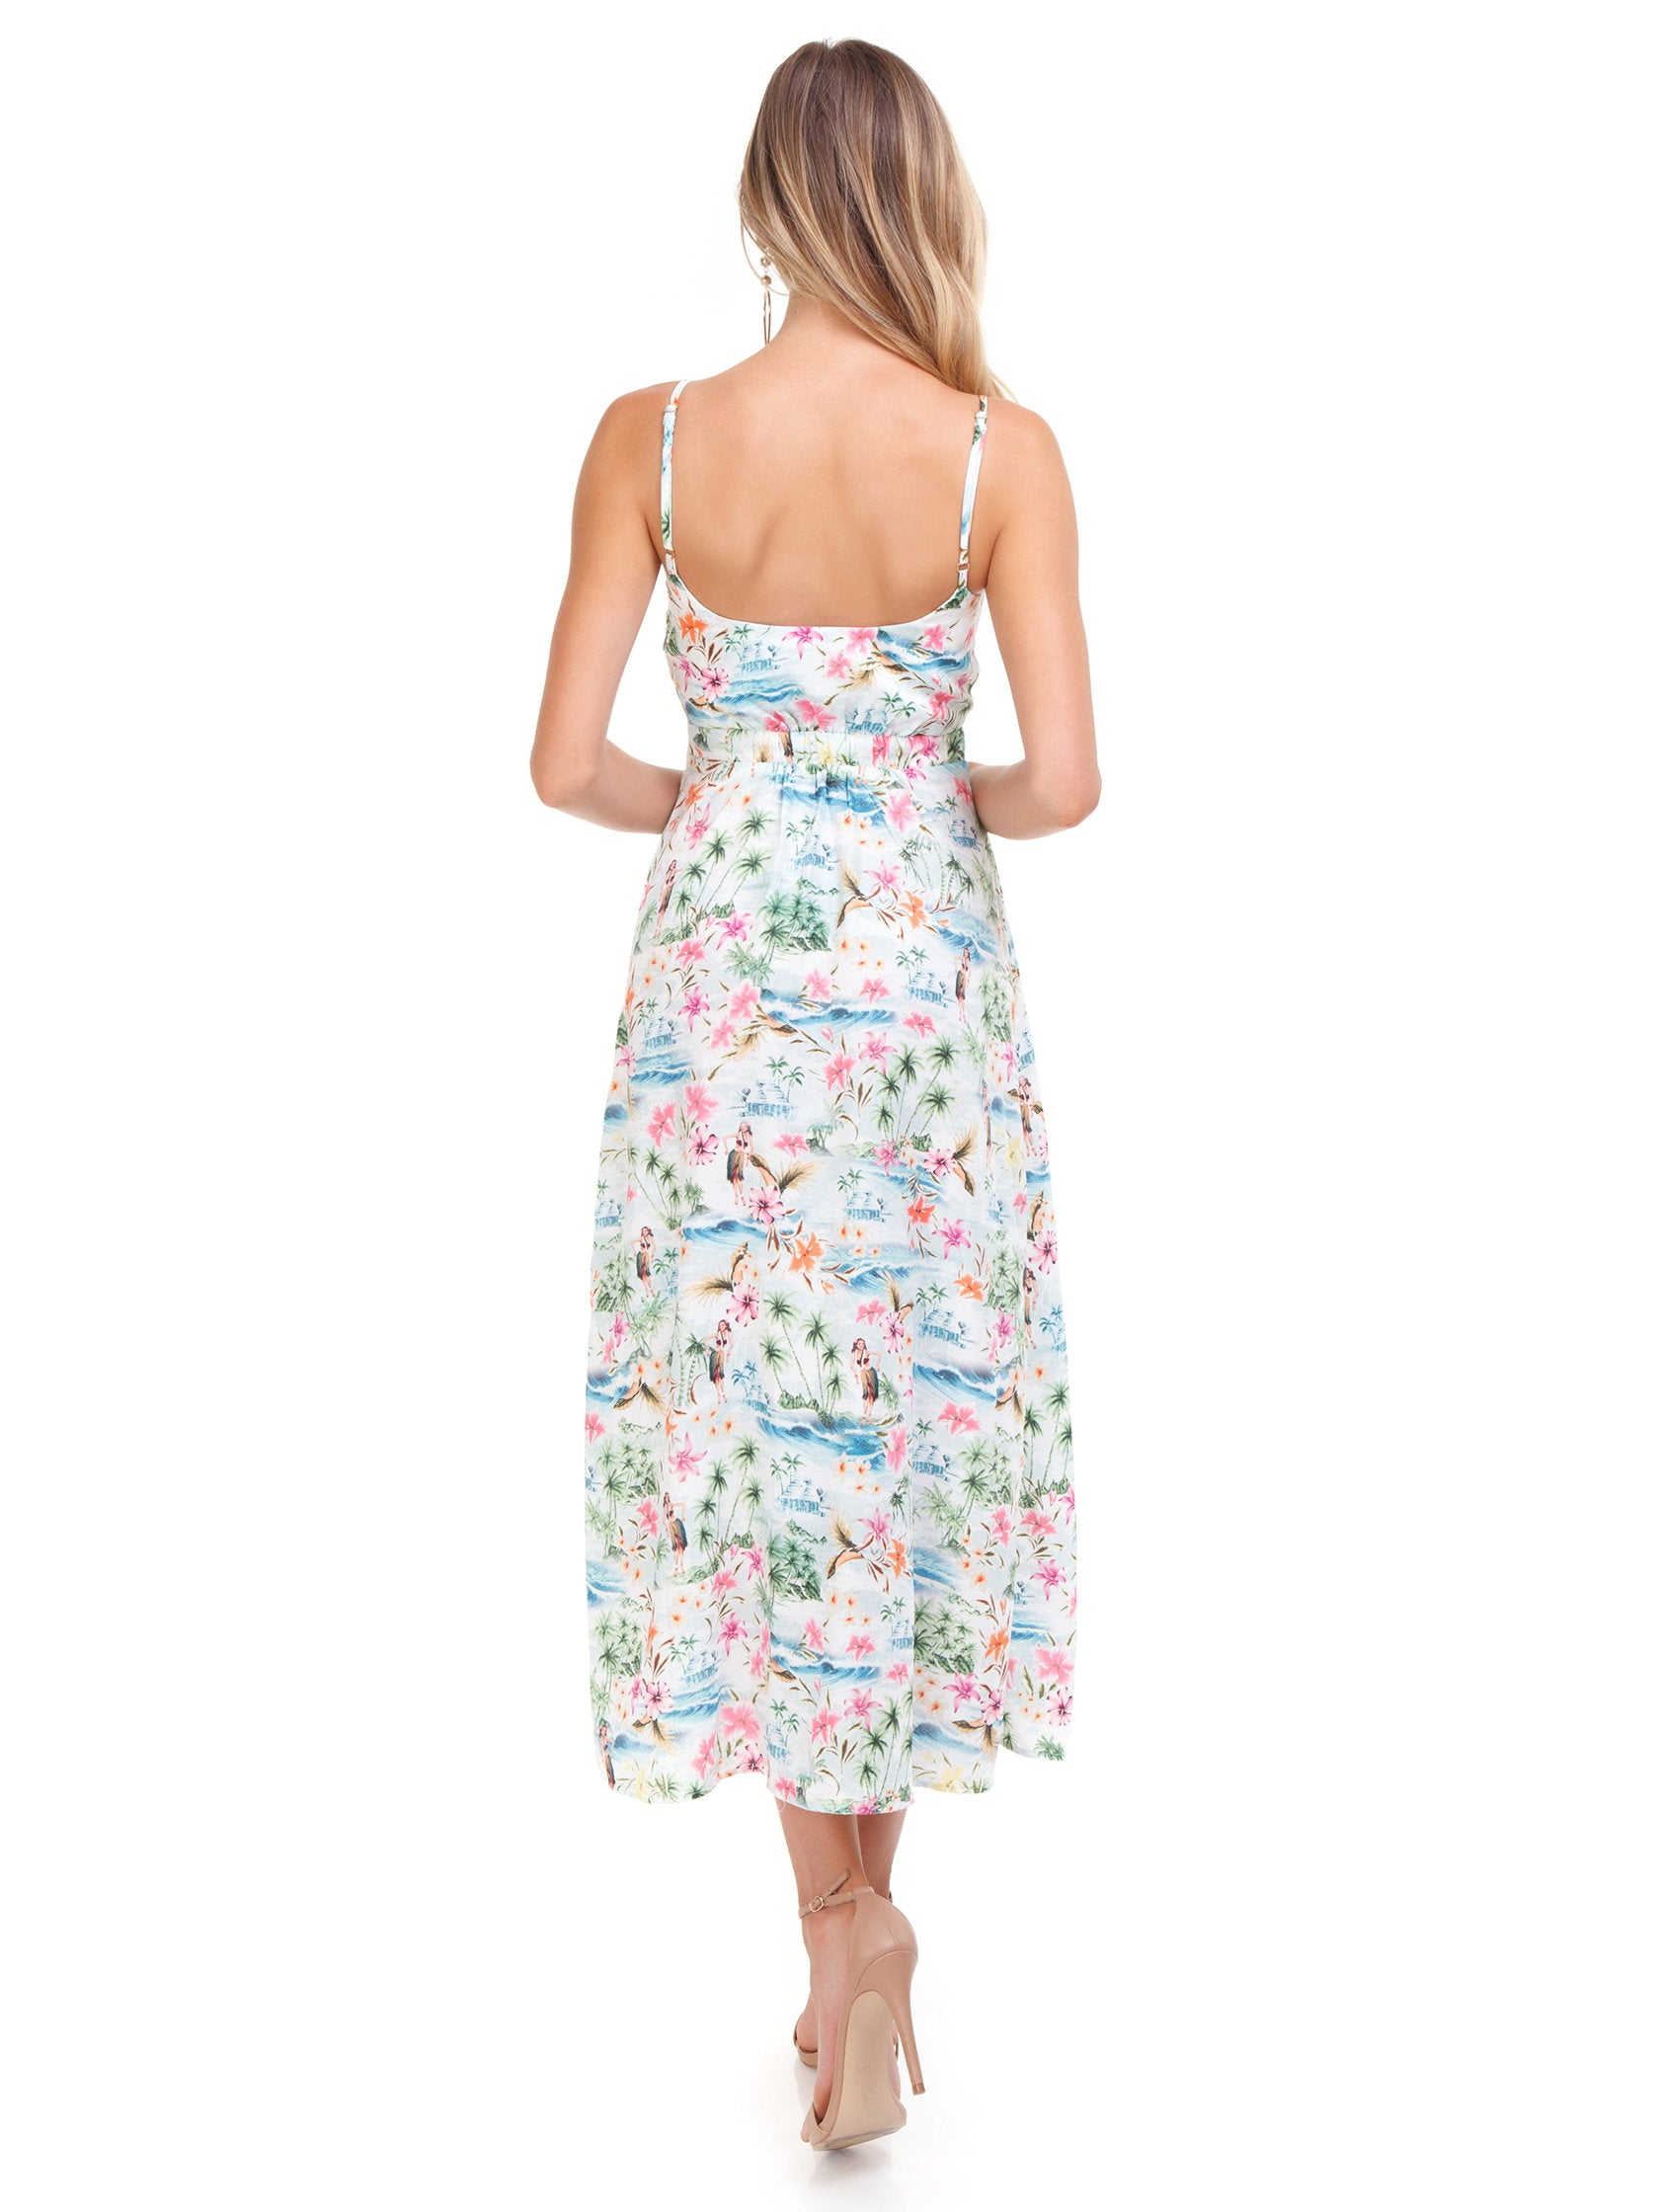 Women outfit in a dress rental from Show Me Your Mumu called Moby Tie Maxi - Tiki Time Gauze